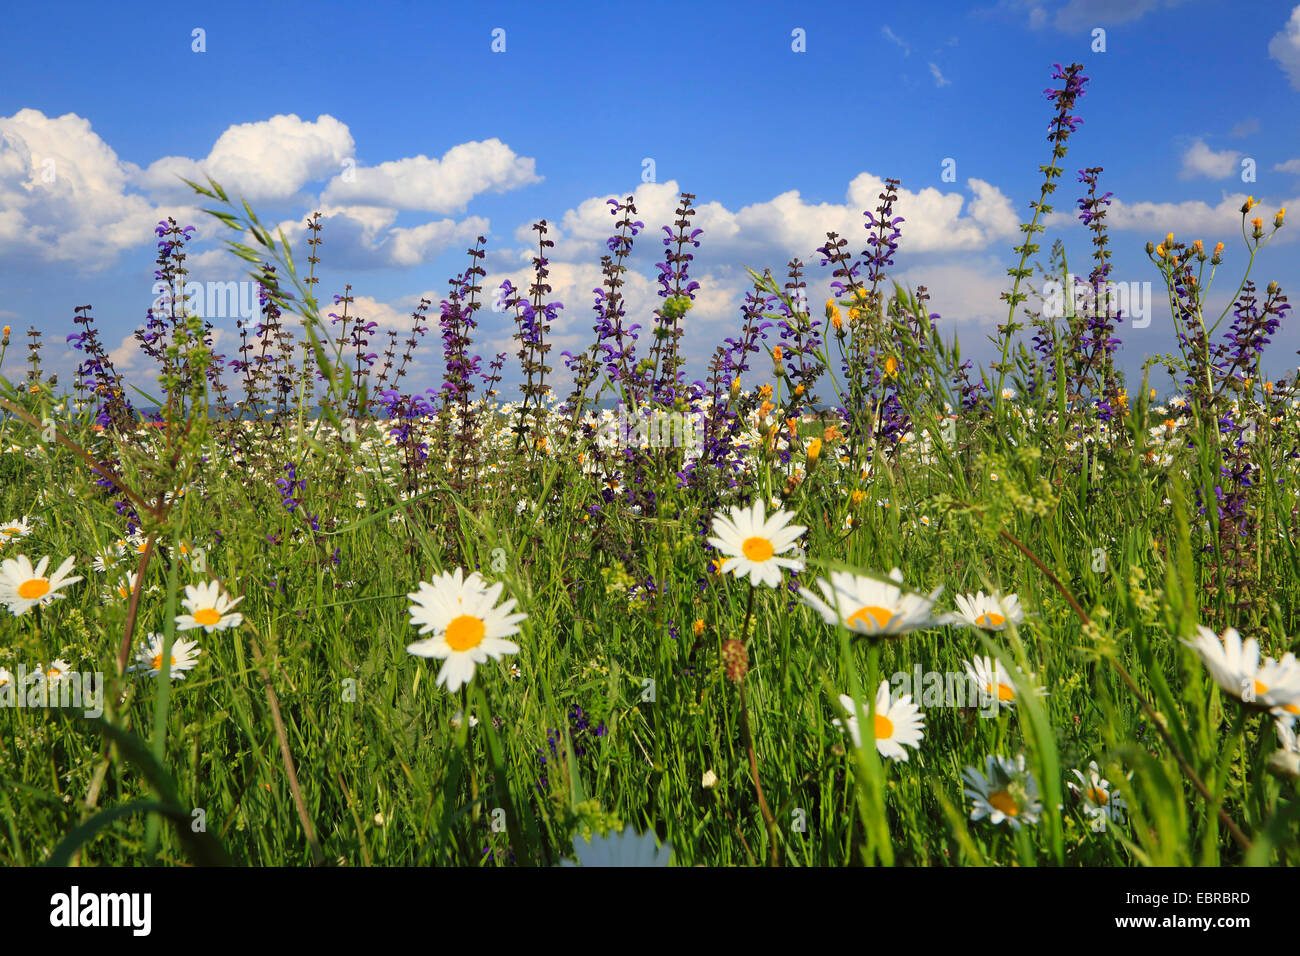 meadow clary, meadow sage (Salvia pratensis), meadoq with oxeye daisies and sage, Germany - Stock Image